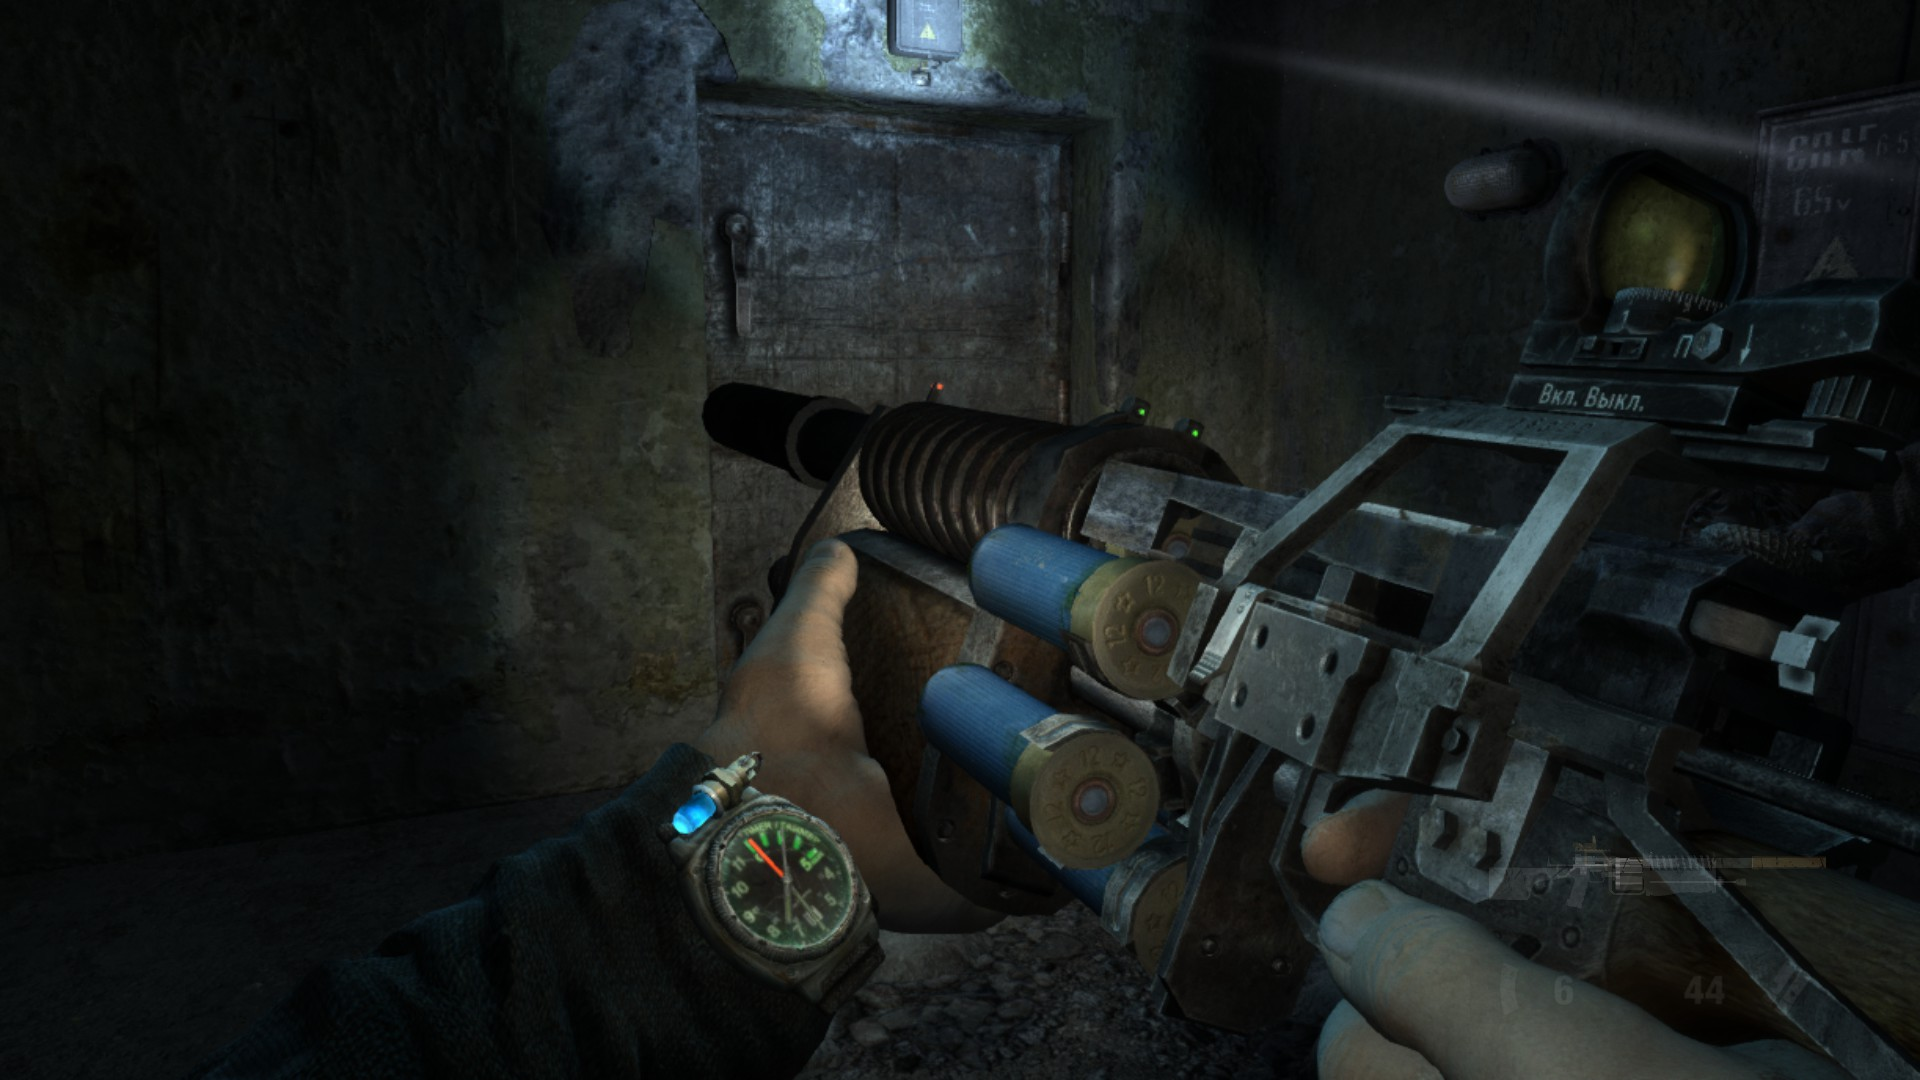 Metro2033 and LL redux screenies here :) 0CEB078044AB4A2A62852F6868EF2A4FCBFE7A04